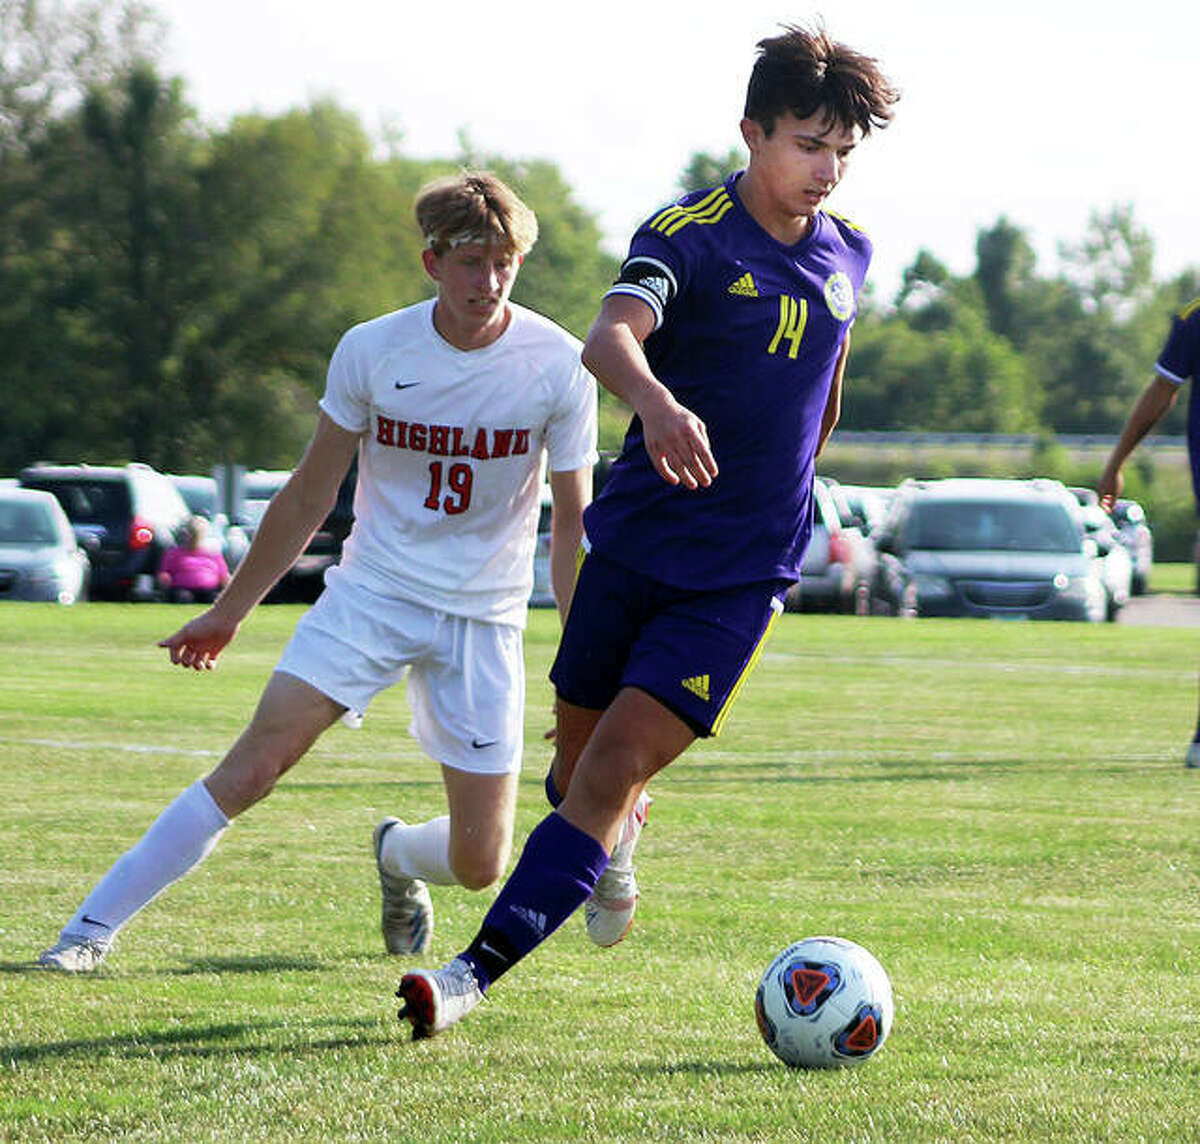 CM's Brayden Zyung (14) controls the ball while being marked by Highland's Owen Morris Thursday in a Mississippi Valley conference game at the Bethalto Sports complex. Zyung scored a goal in CM's 3-0 victory.